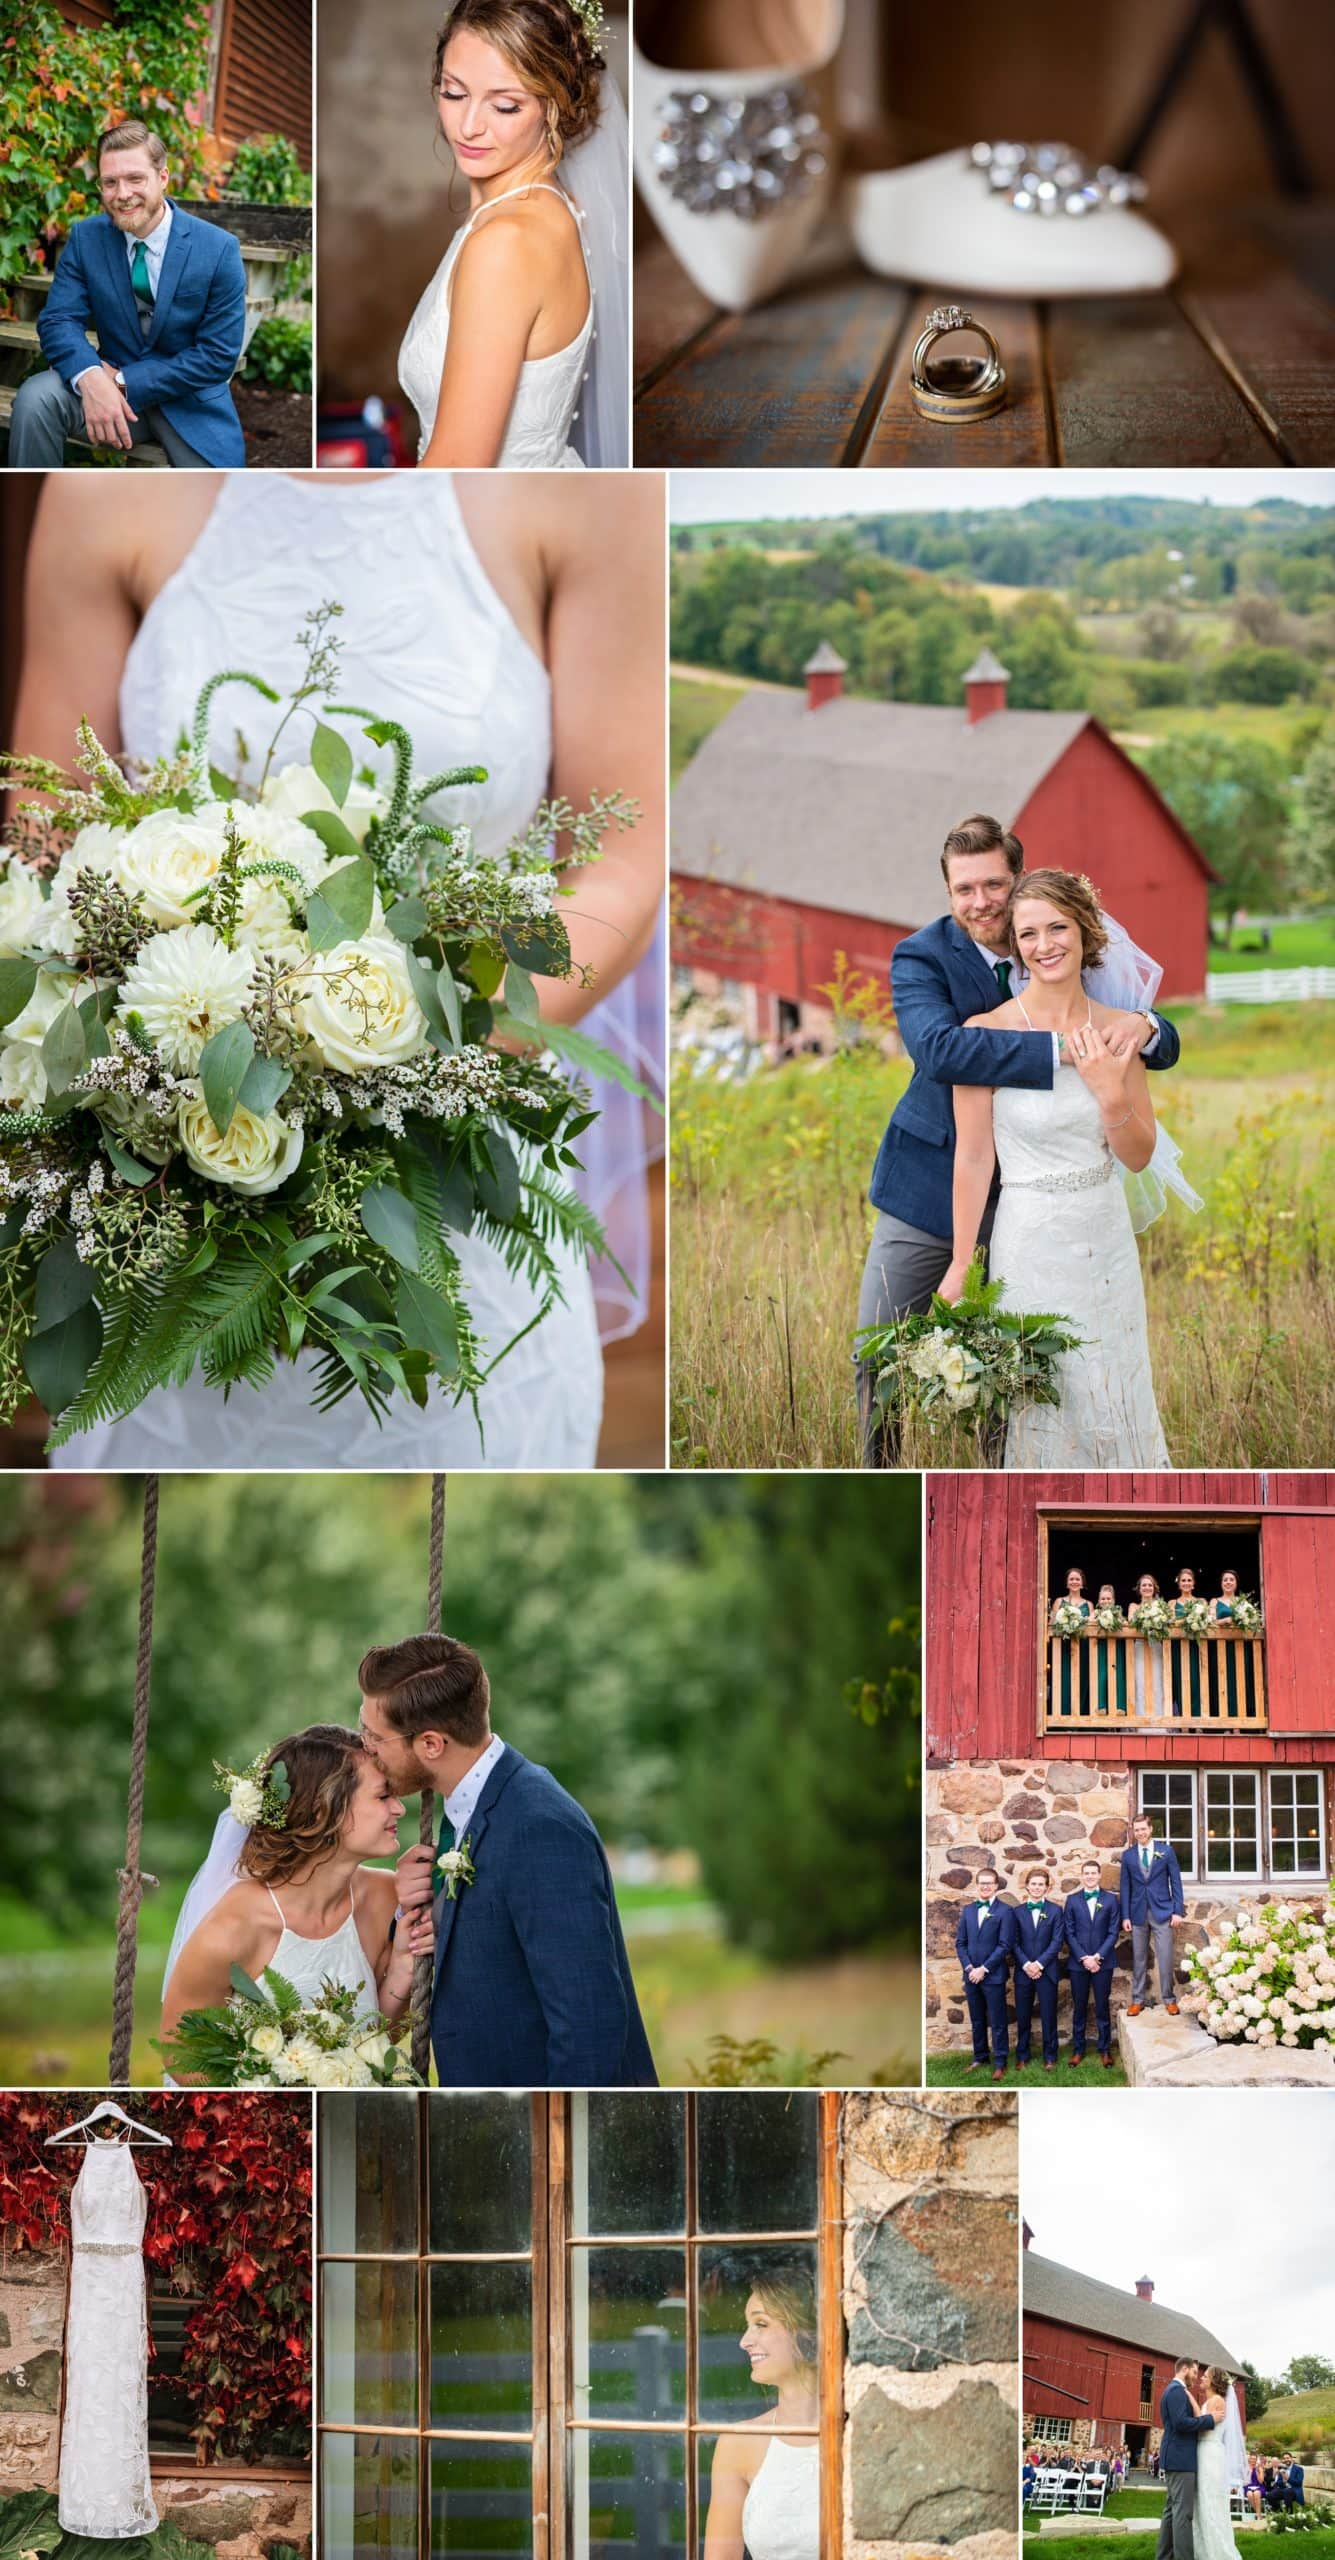 Collage exhibiting the editing and gallery creation skills of Minnesota  wedding photographers Allison Million and Rachel Lahulm.